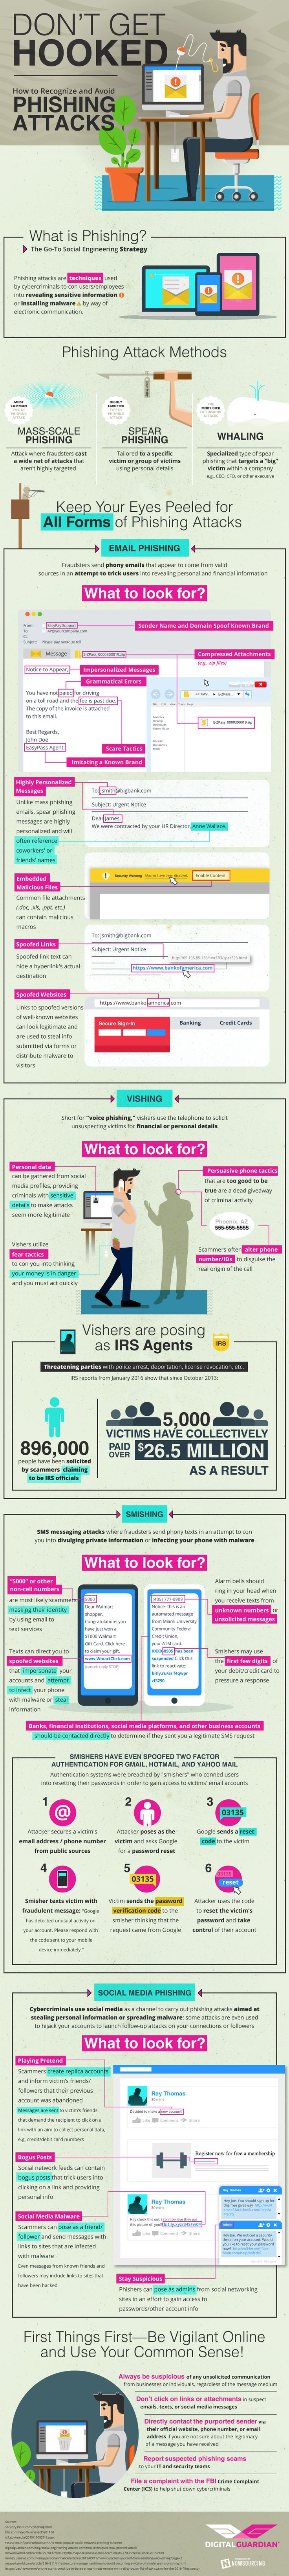 https://digitalguardian.com/blog/dont-get-hooked-how-recognize-and-avoid-phishing-attacks-infographic